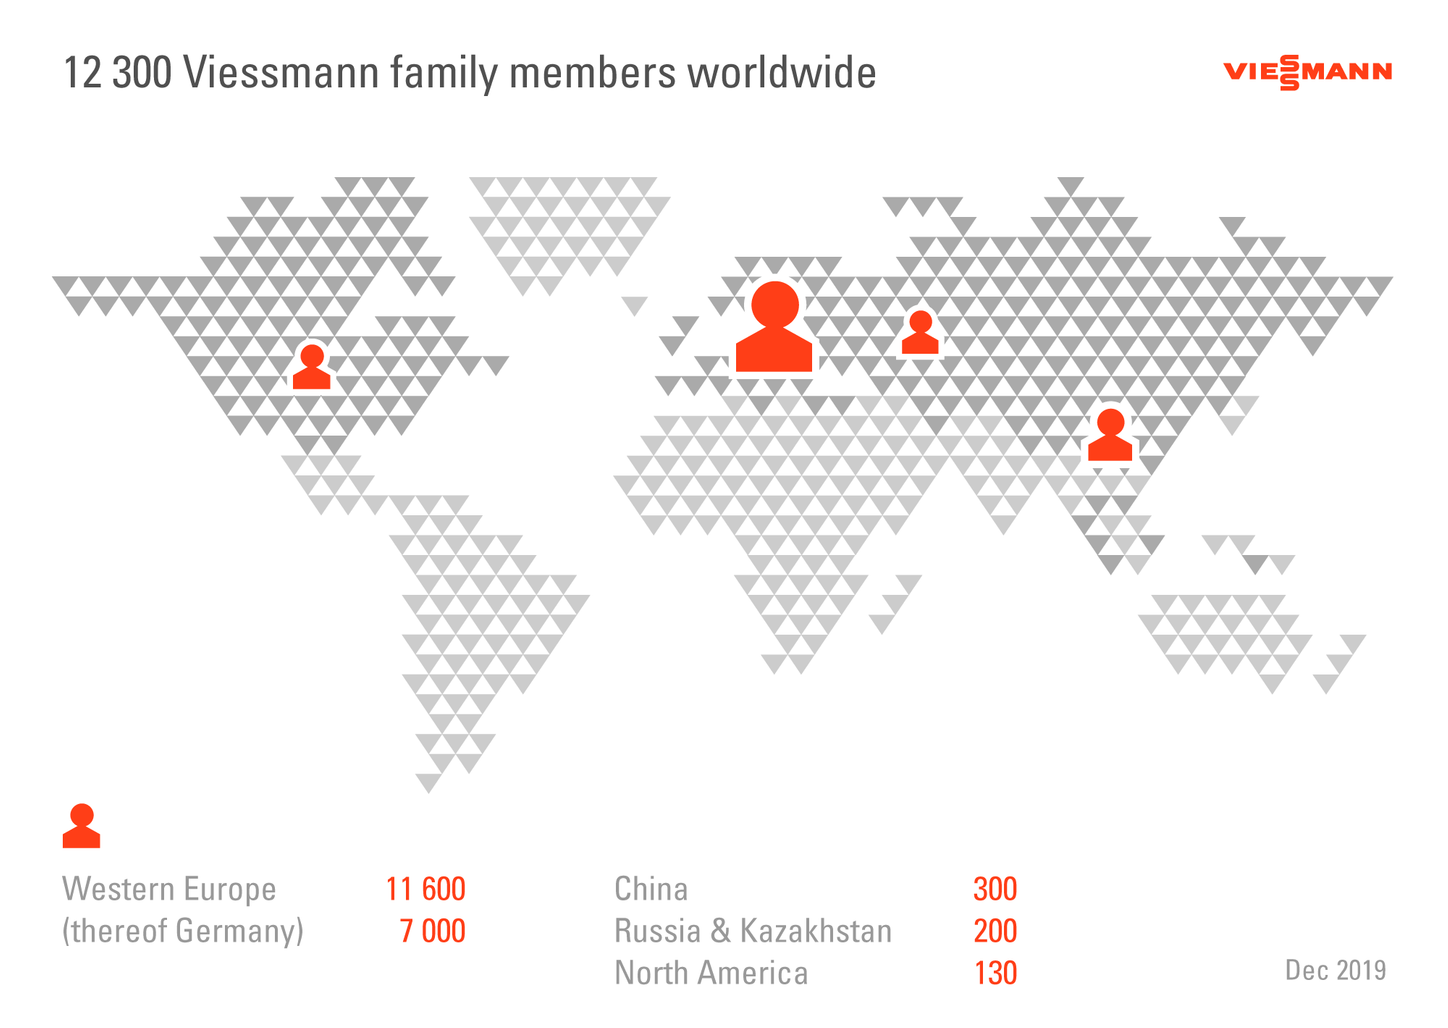 The graphic shows the distribution of Viessmann family members worldwide.